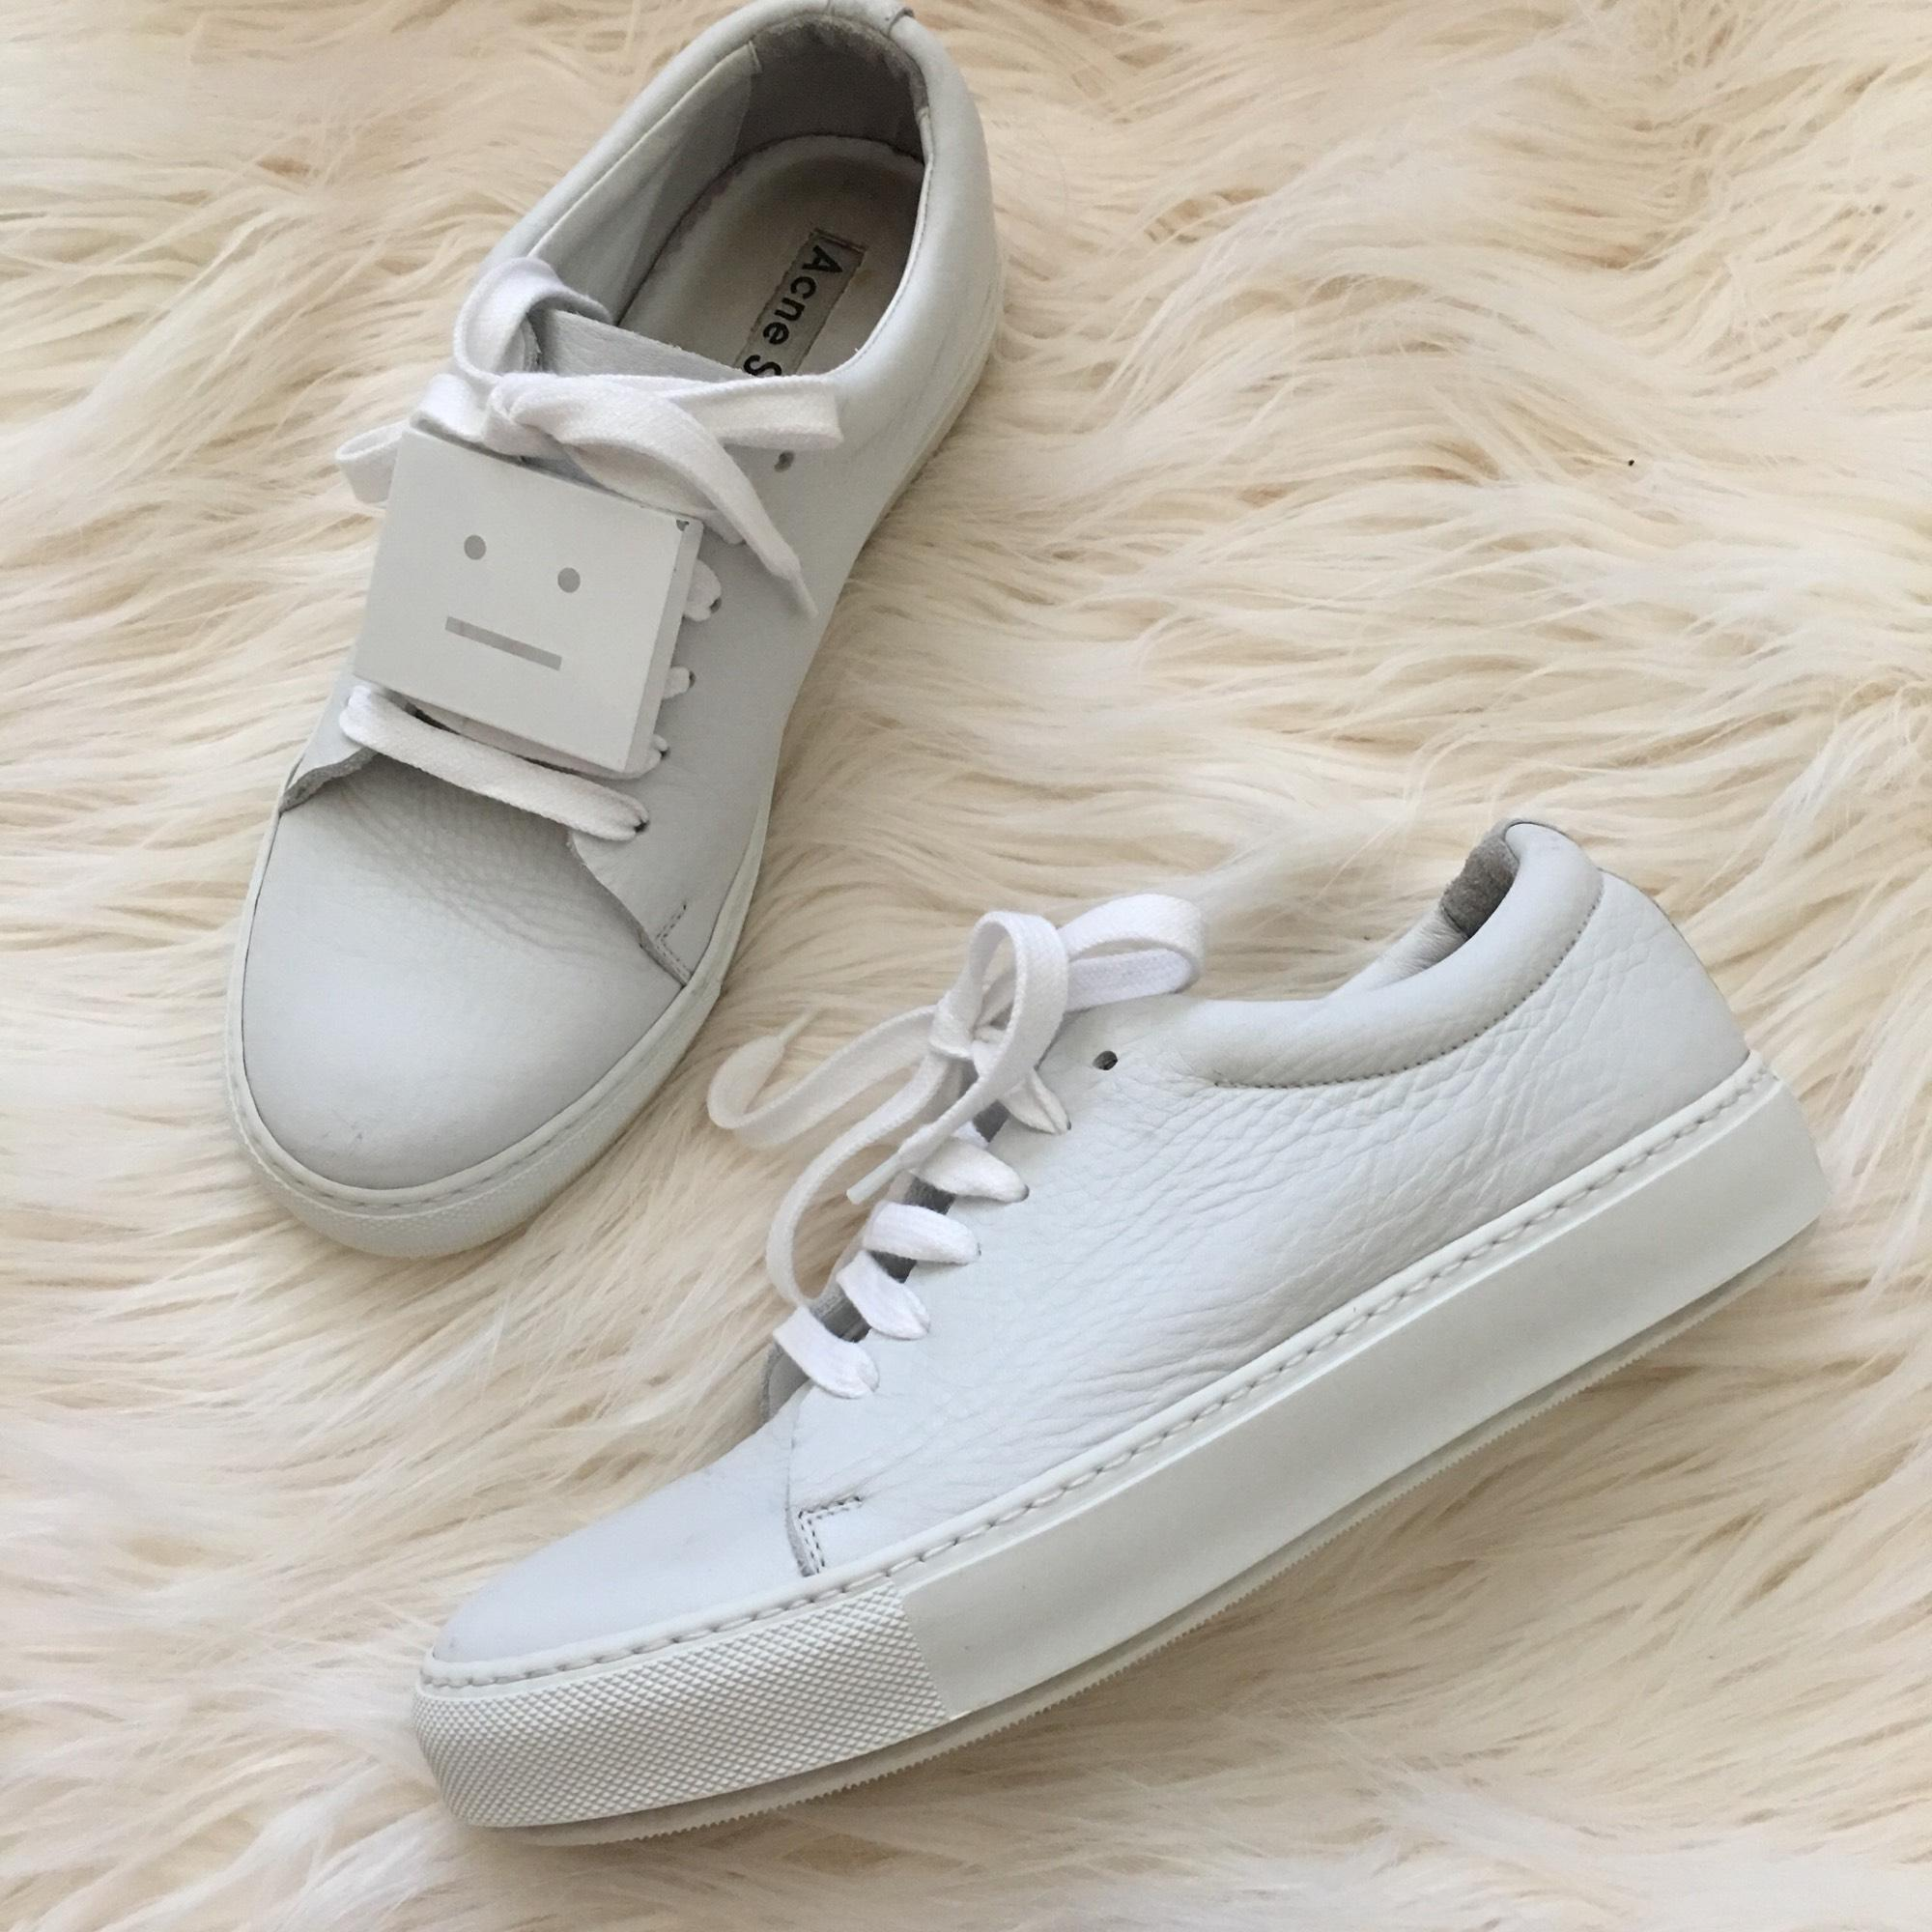 Newest Cheap Online Acne Adriana Grained Leather Trainers Cheap Sale New Arrival Outlet Locations Sale Online Discount Finishline Sale Perfect 5Zl3K26by